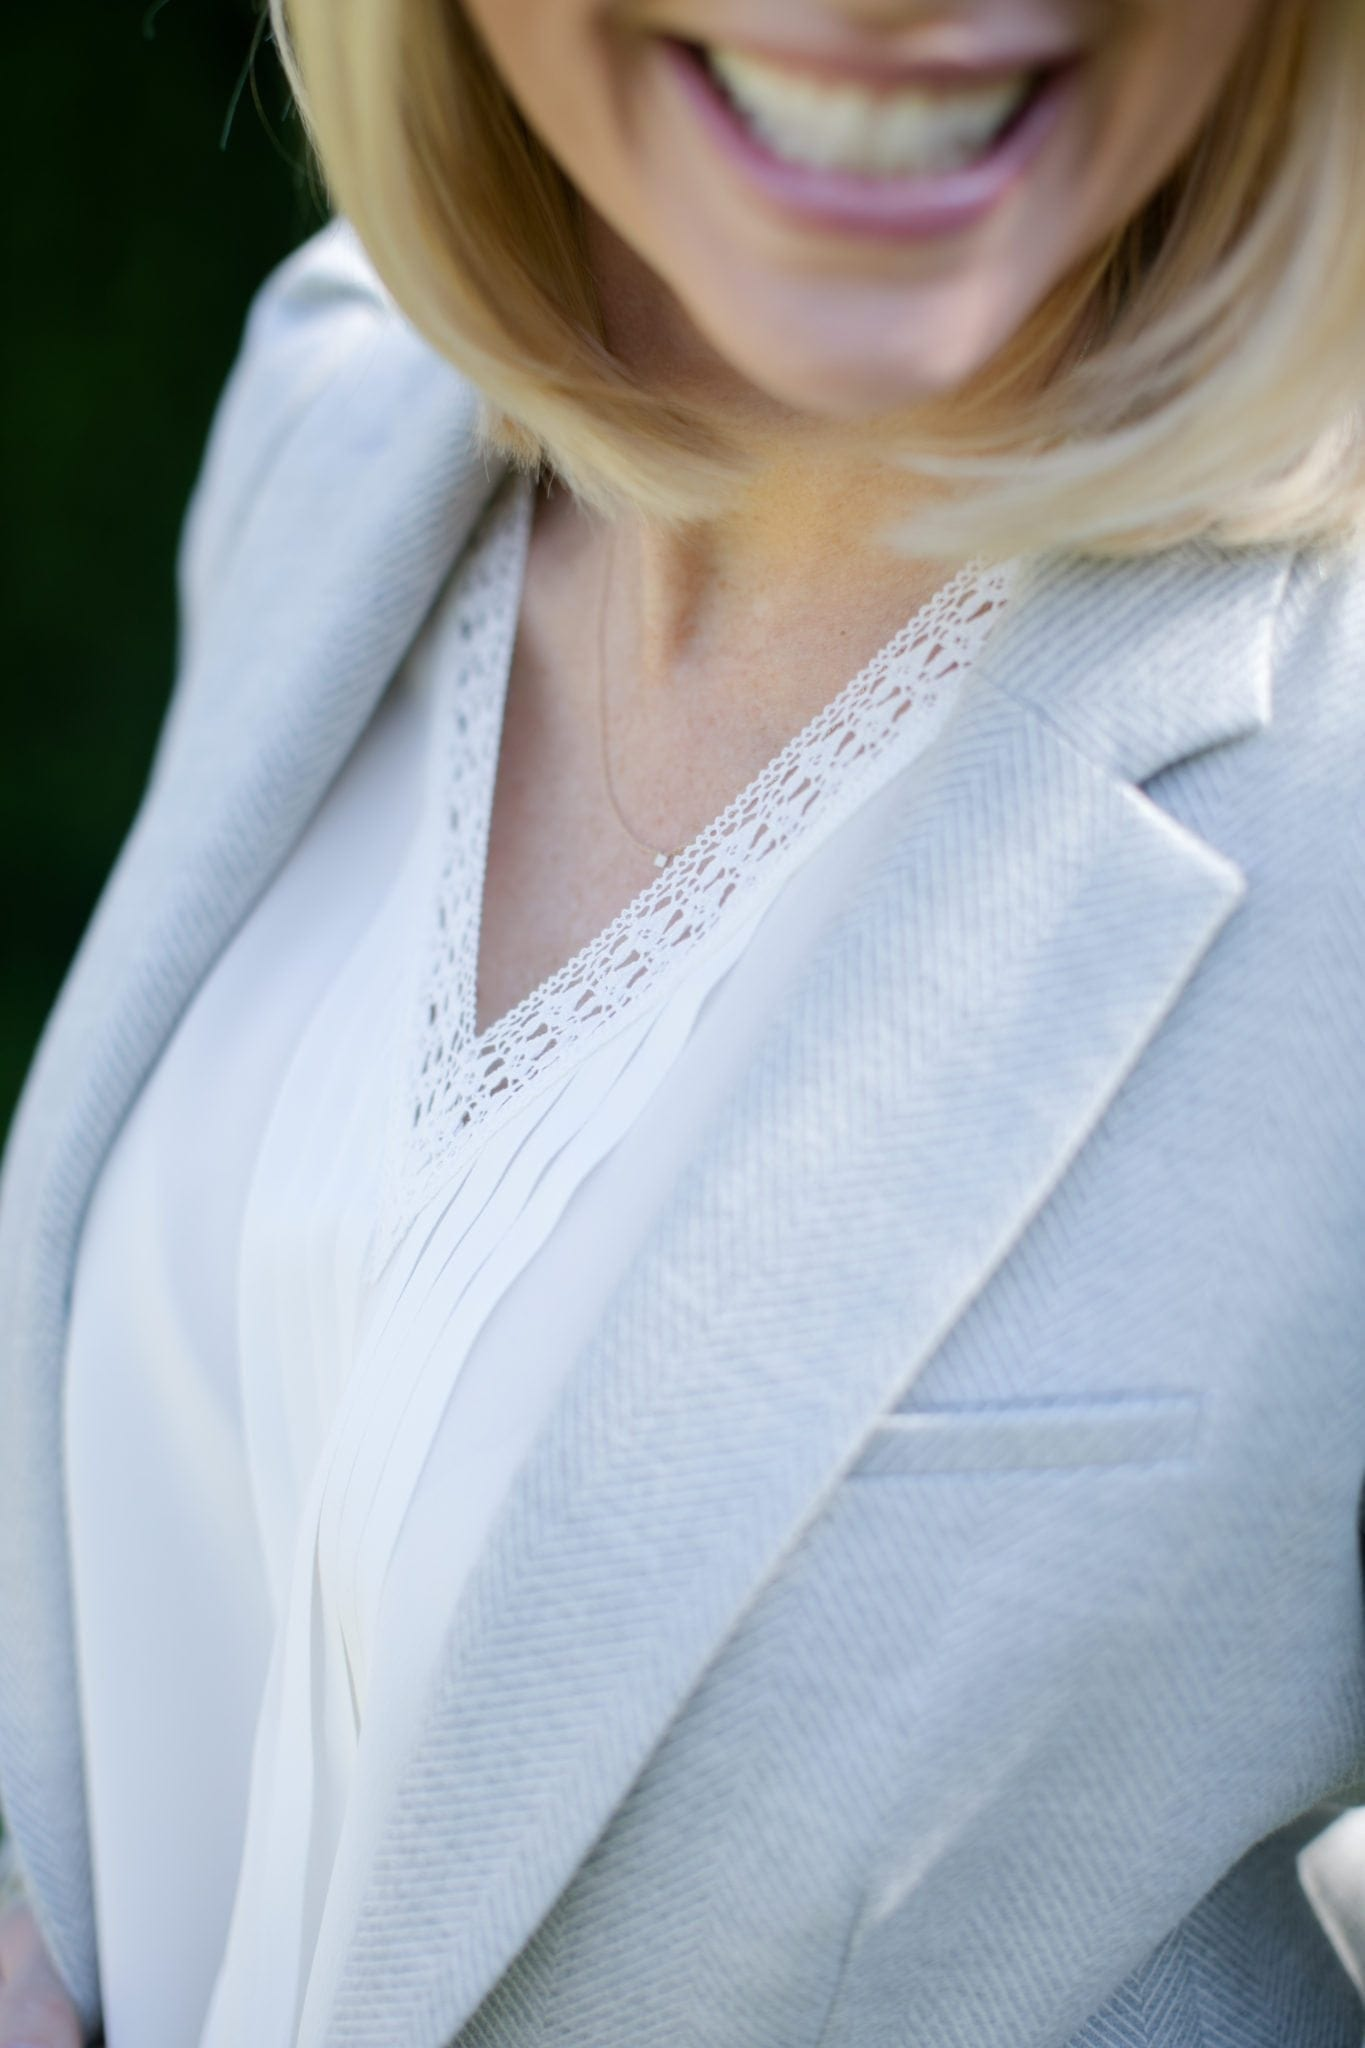 white lace joie blouse with light blue blazer and blonde hair for casual spring look